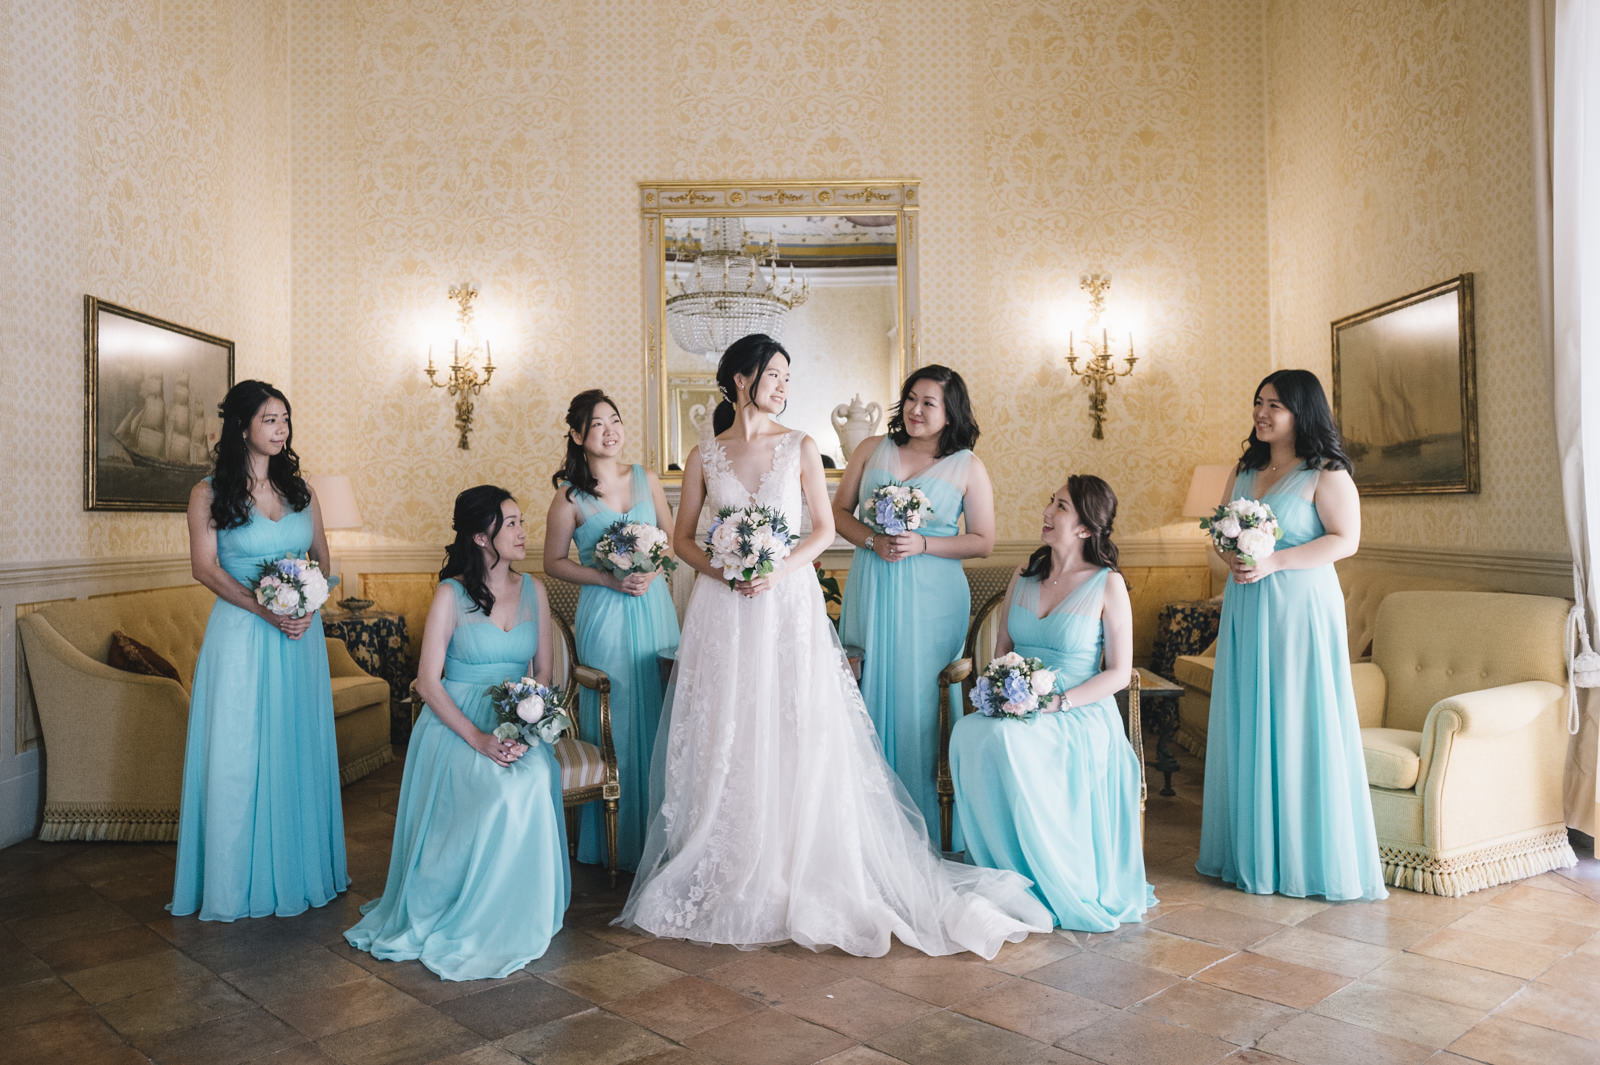 the bride with her bridesmaids in light blue dresses